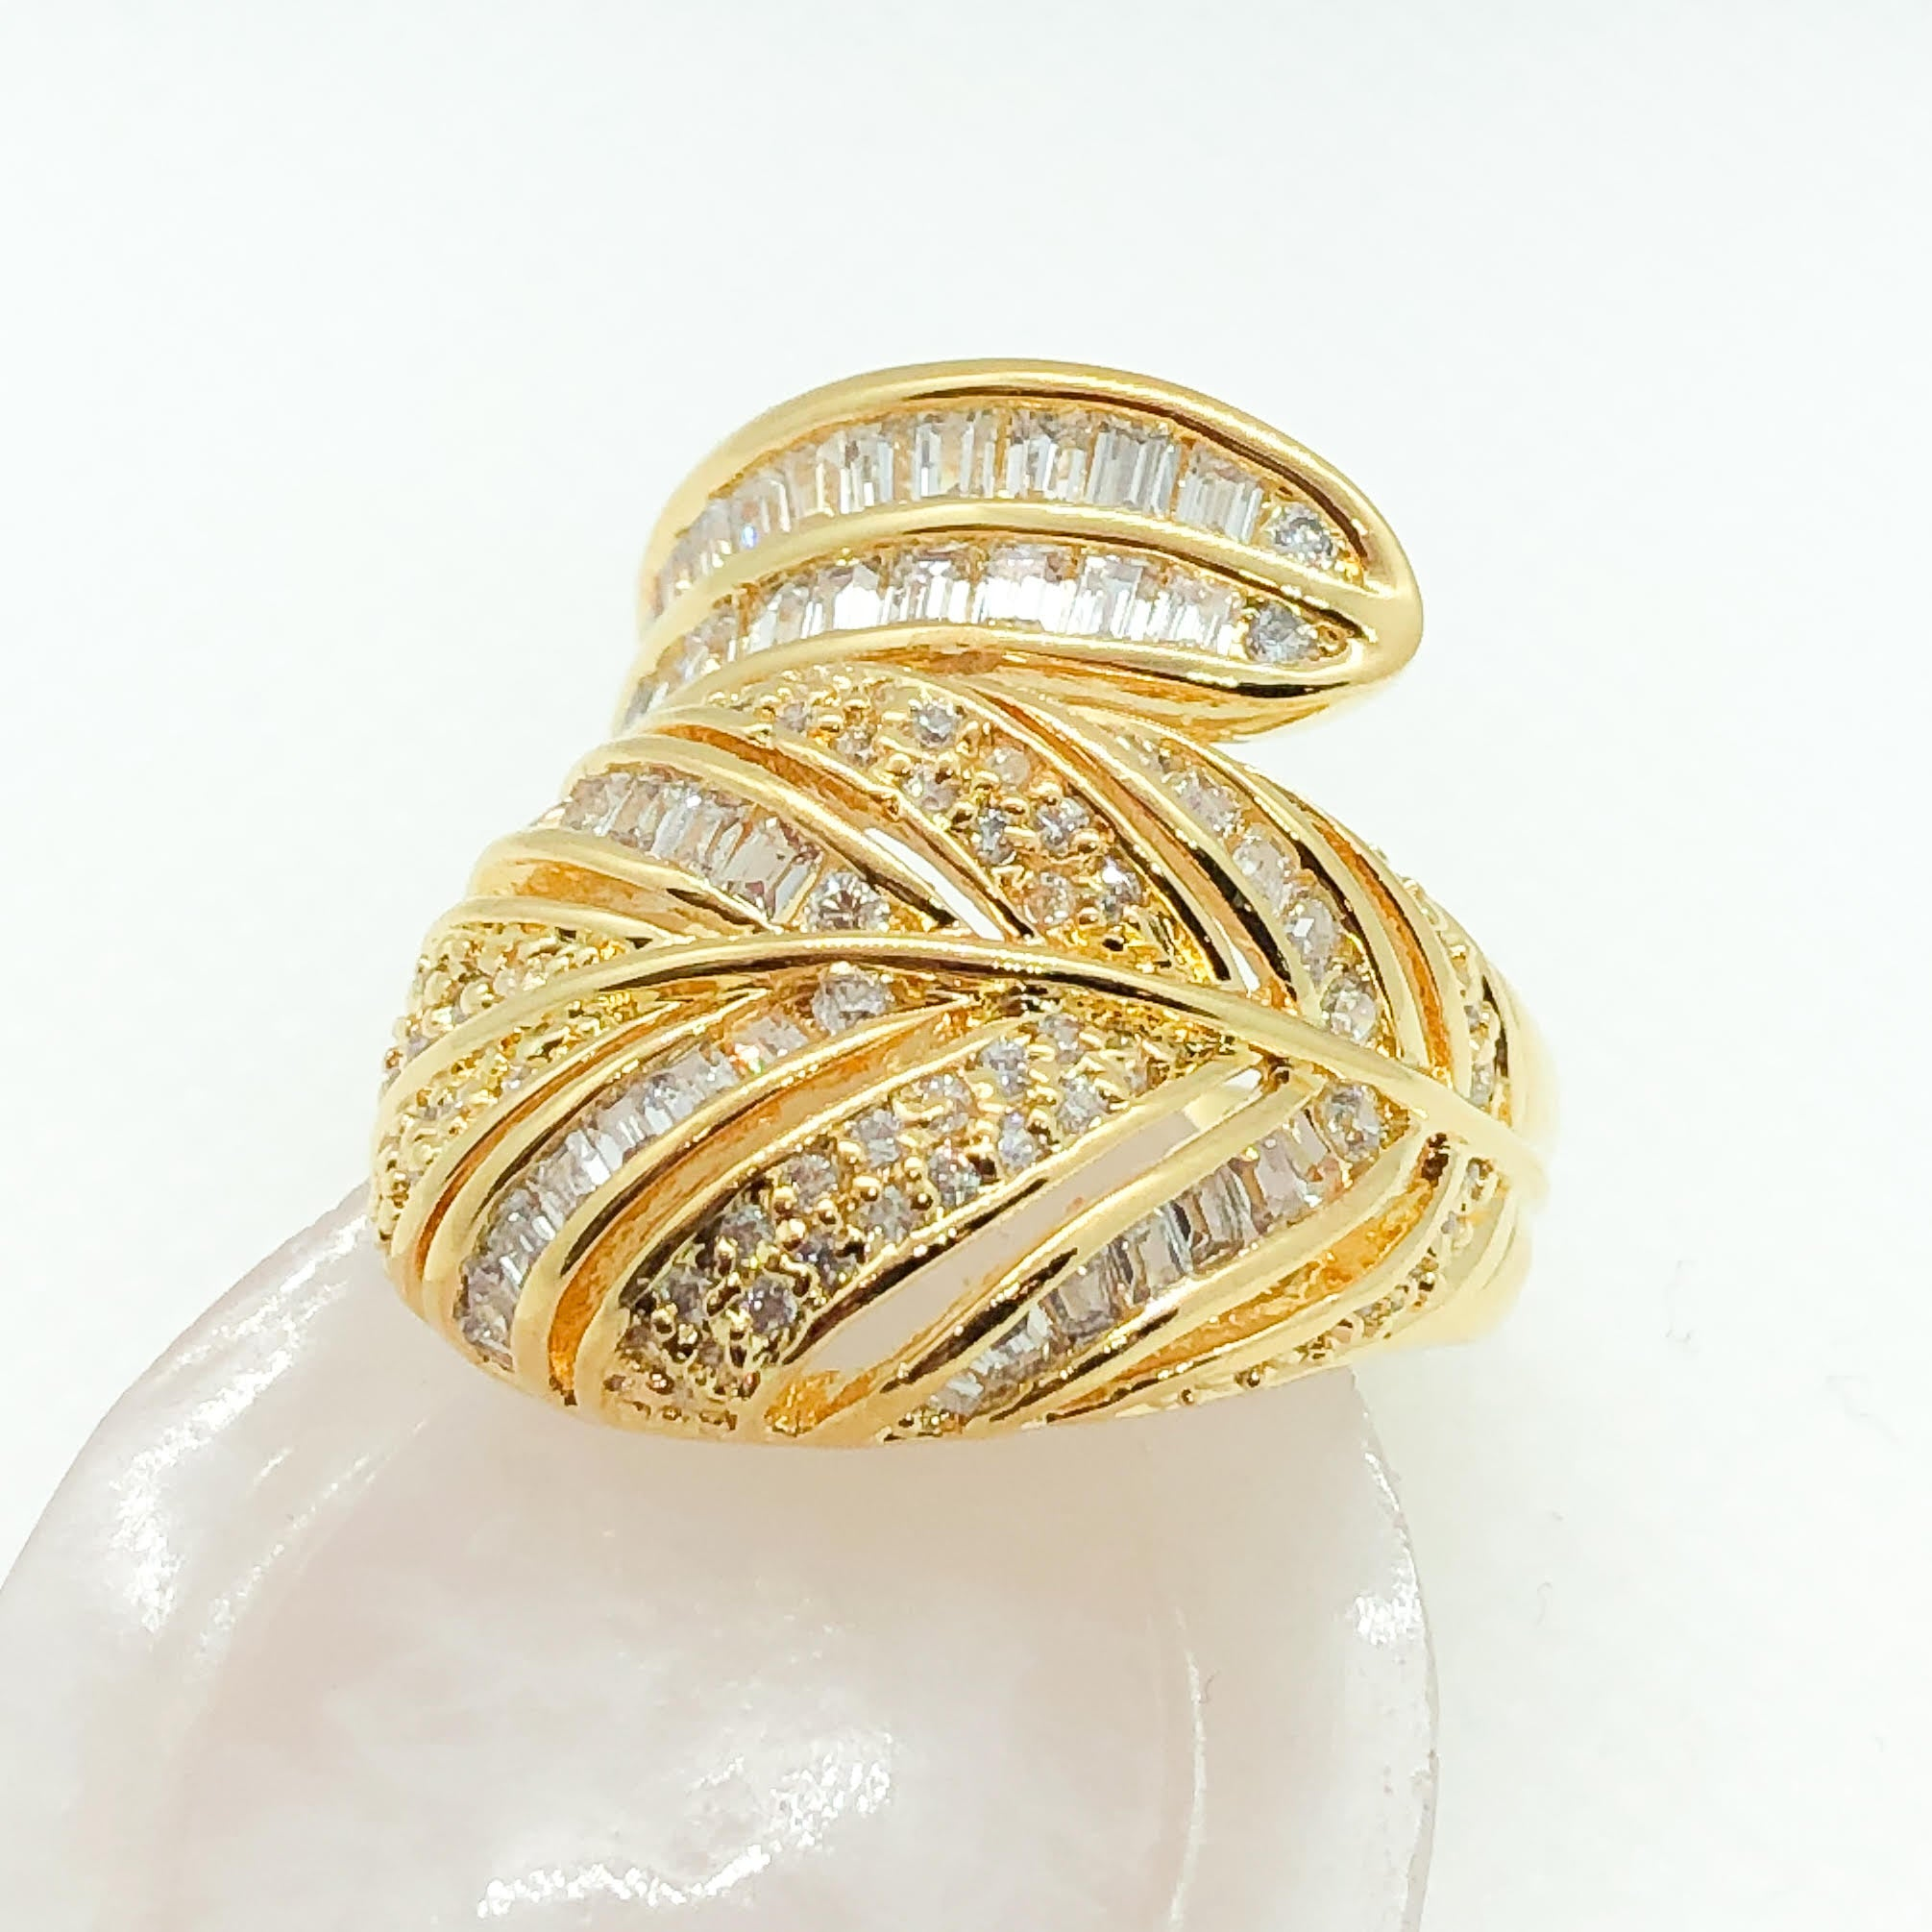 ID:R4149 Women 18K Yellow Gold GF Fashion Jewelry Latest Unique Leaf Design Shimmering Gemstones Cocktail Ring